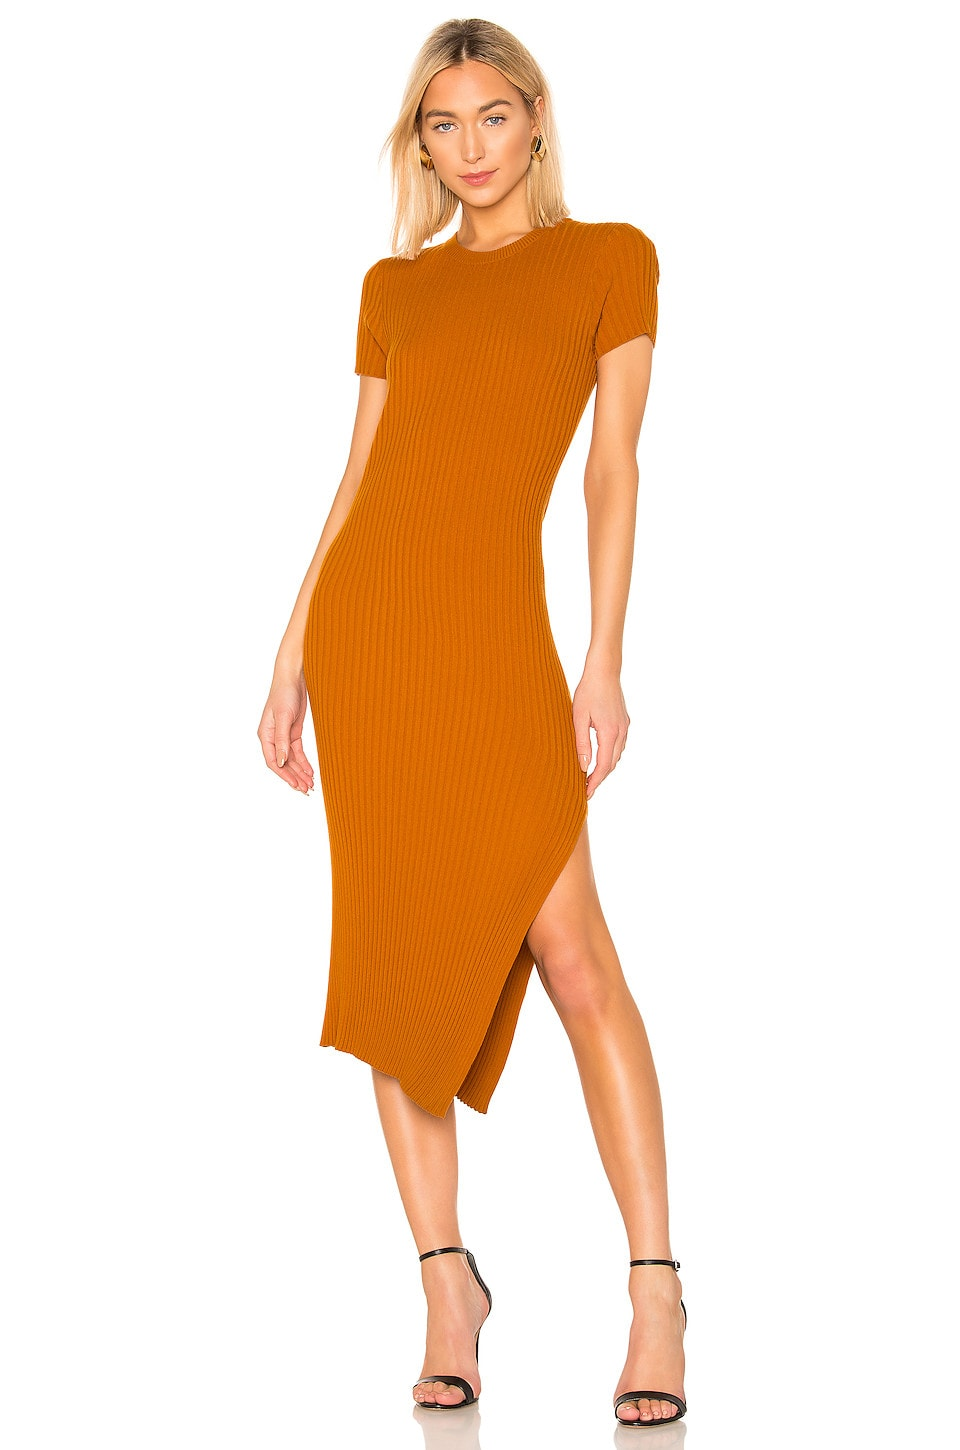 A.l.c Dresses A.L.C. MINETTA DRESS IN BURNT ORANGE.